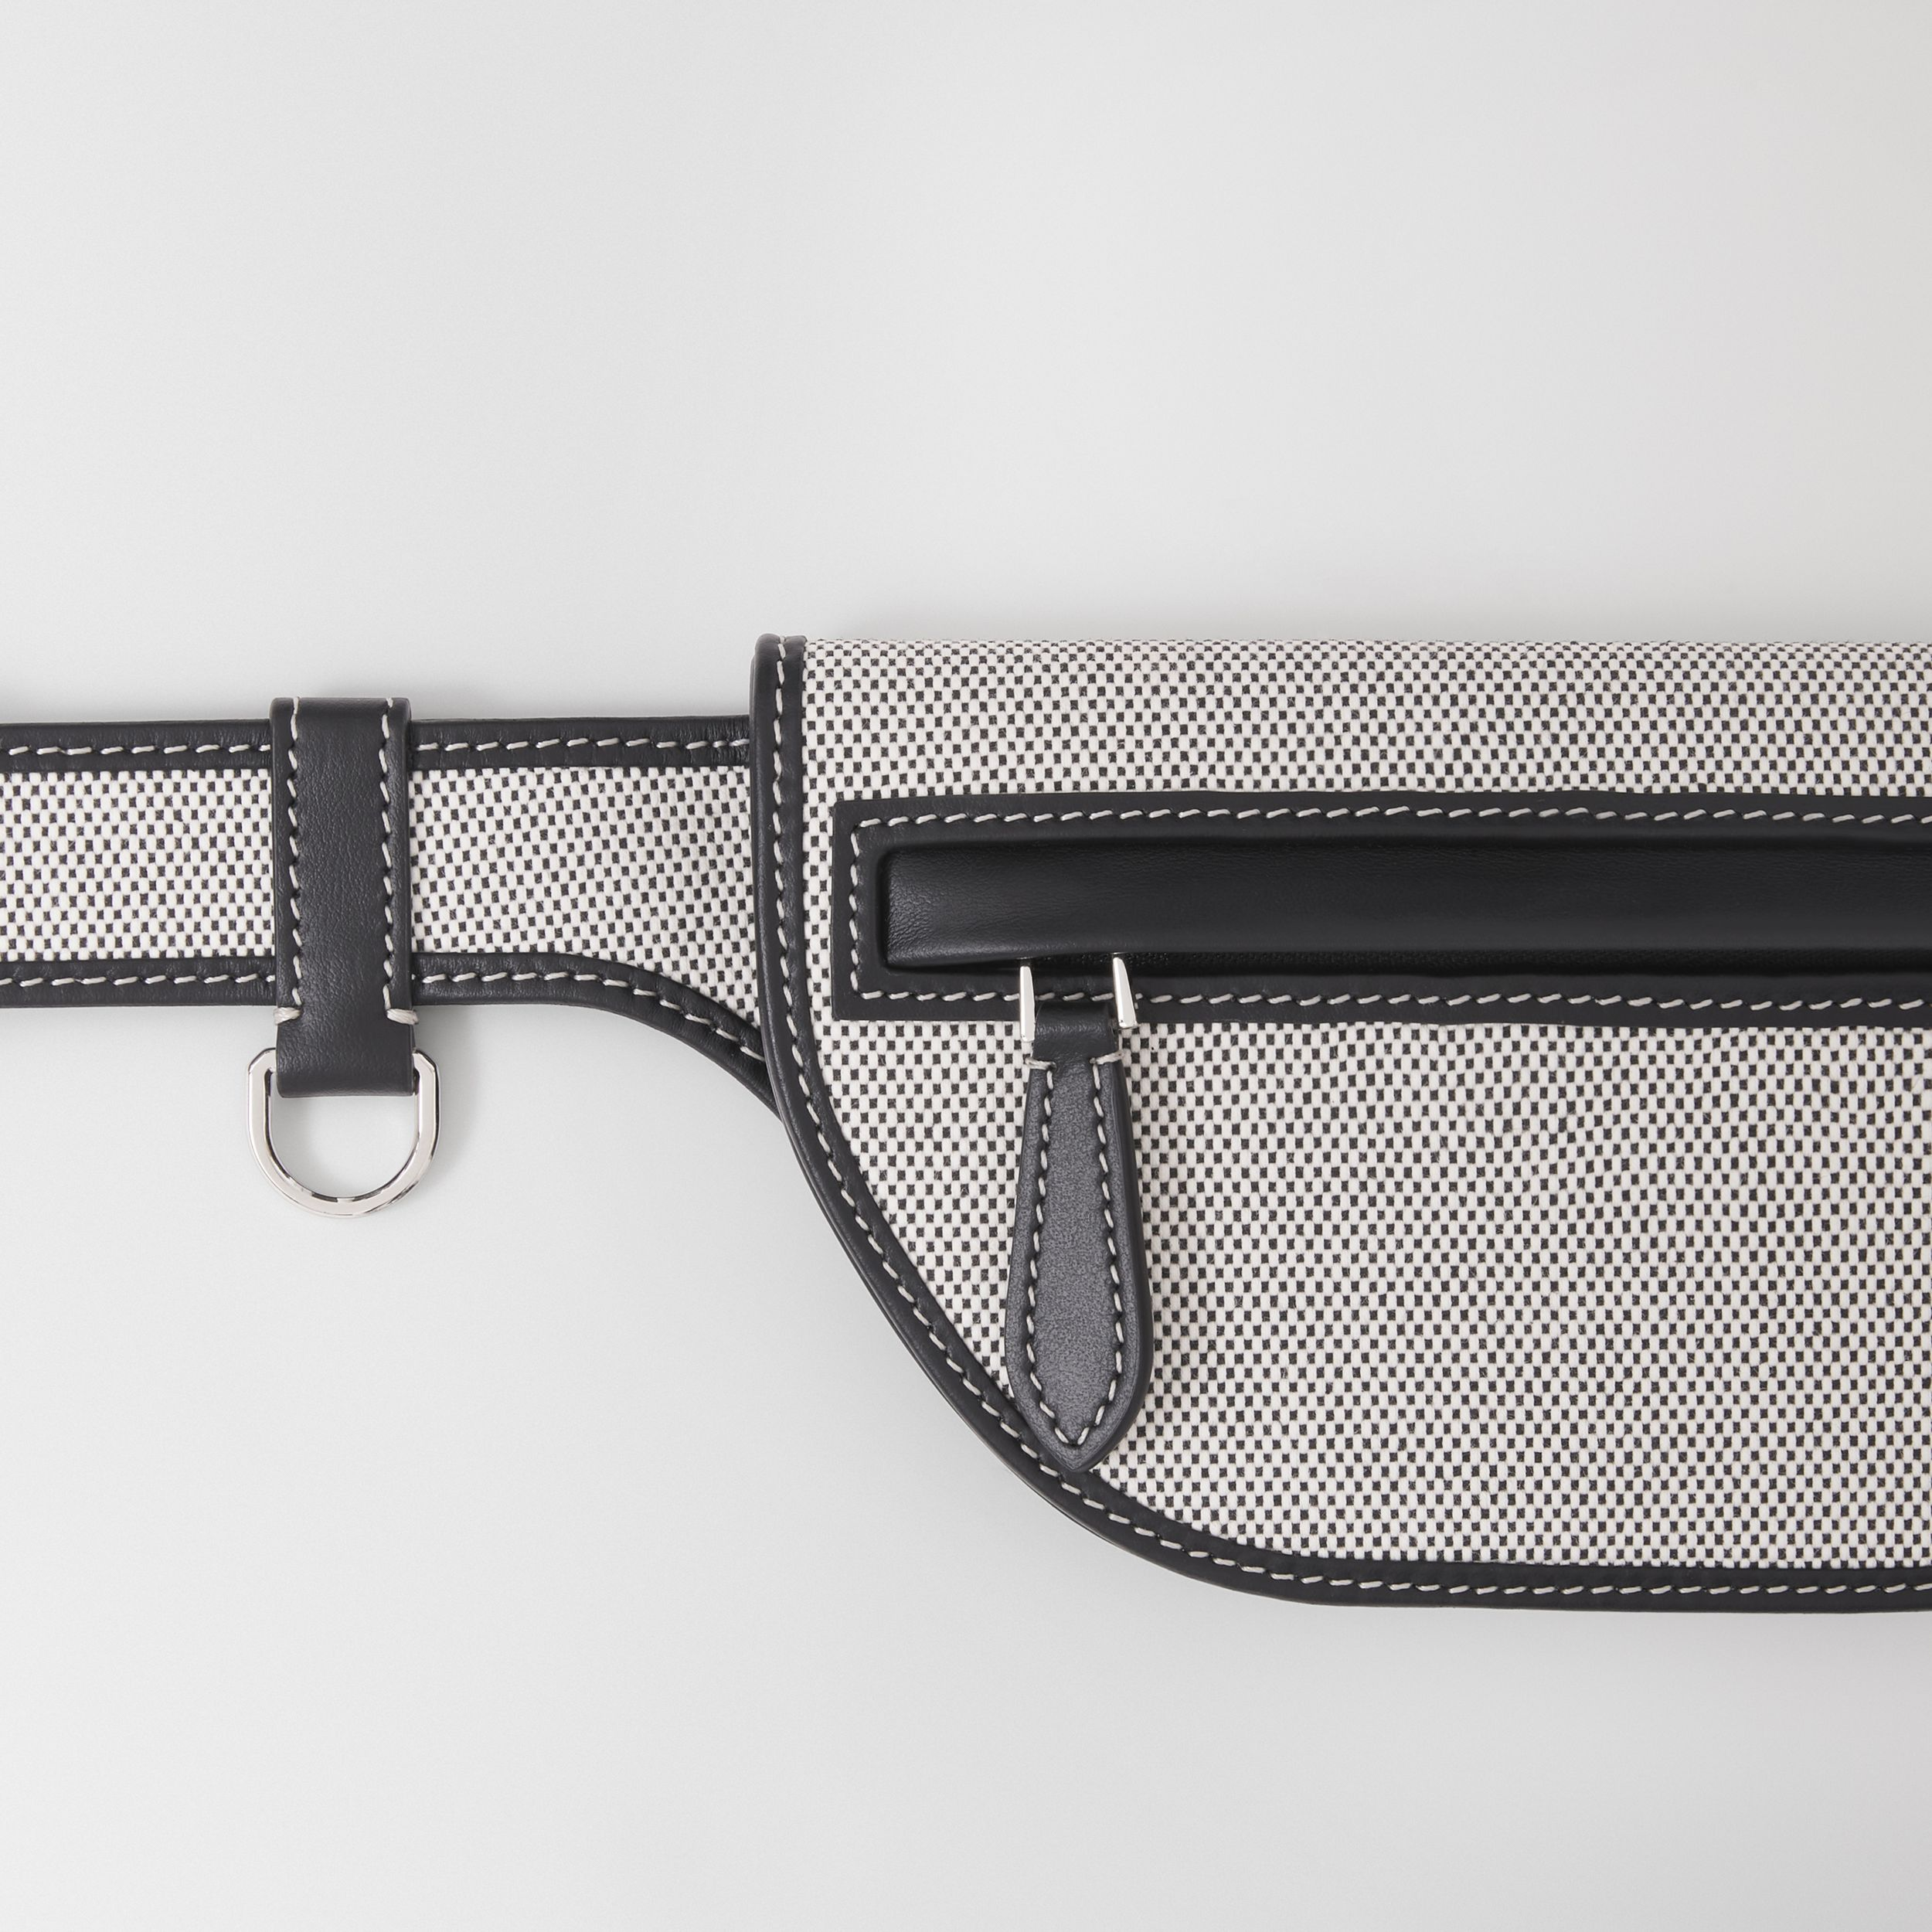 Horseferry Print Canvas and Leather Olympia Belt Bag in Black/white - Women | Burberry United Kingdom - 2